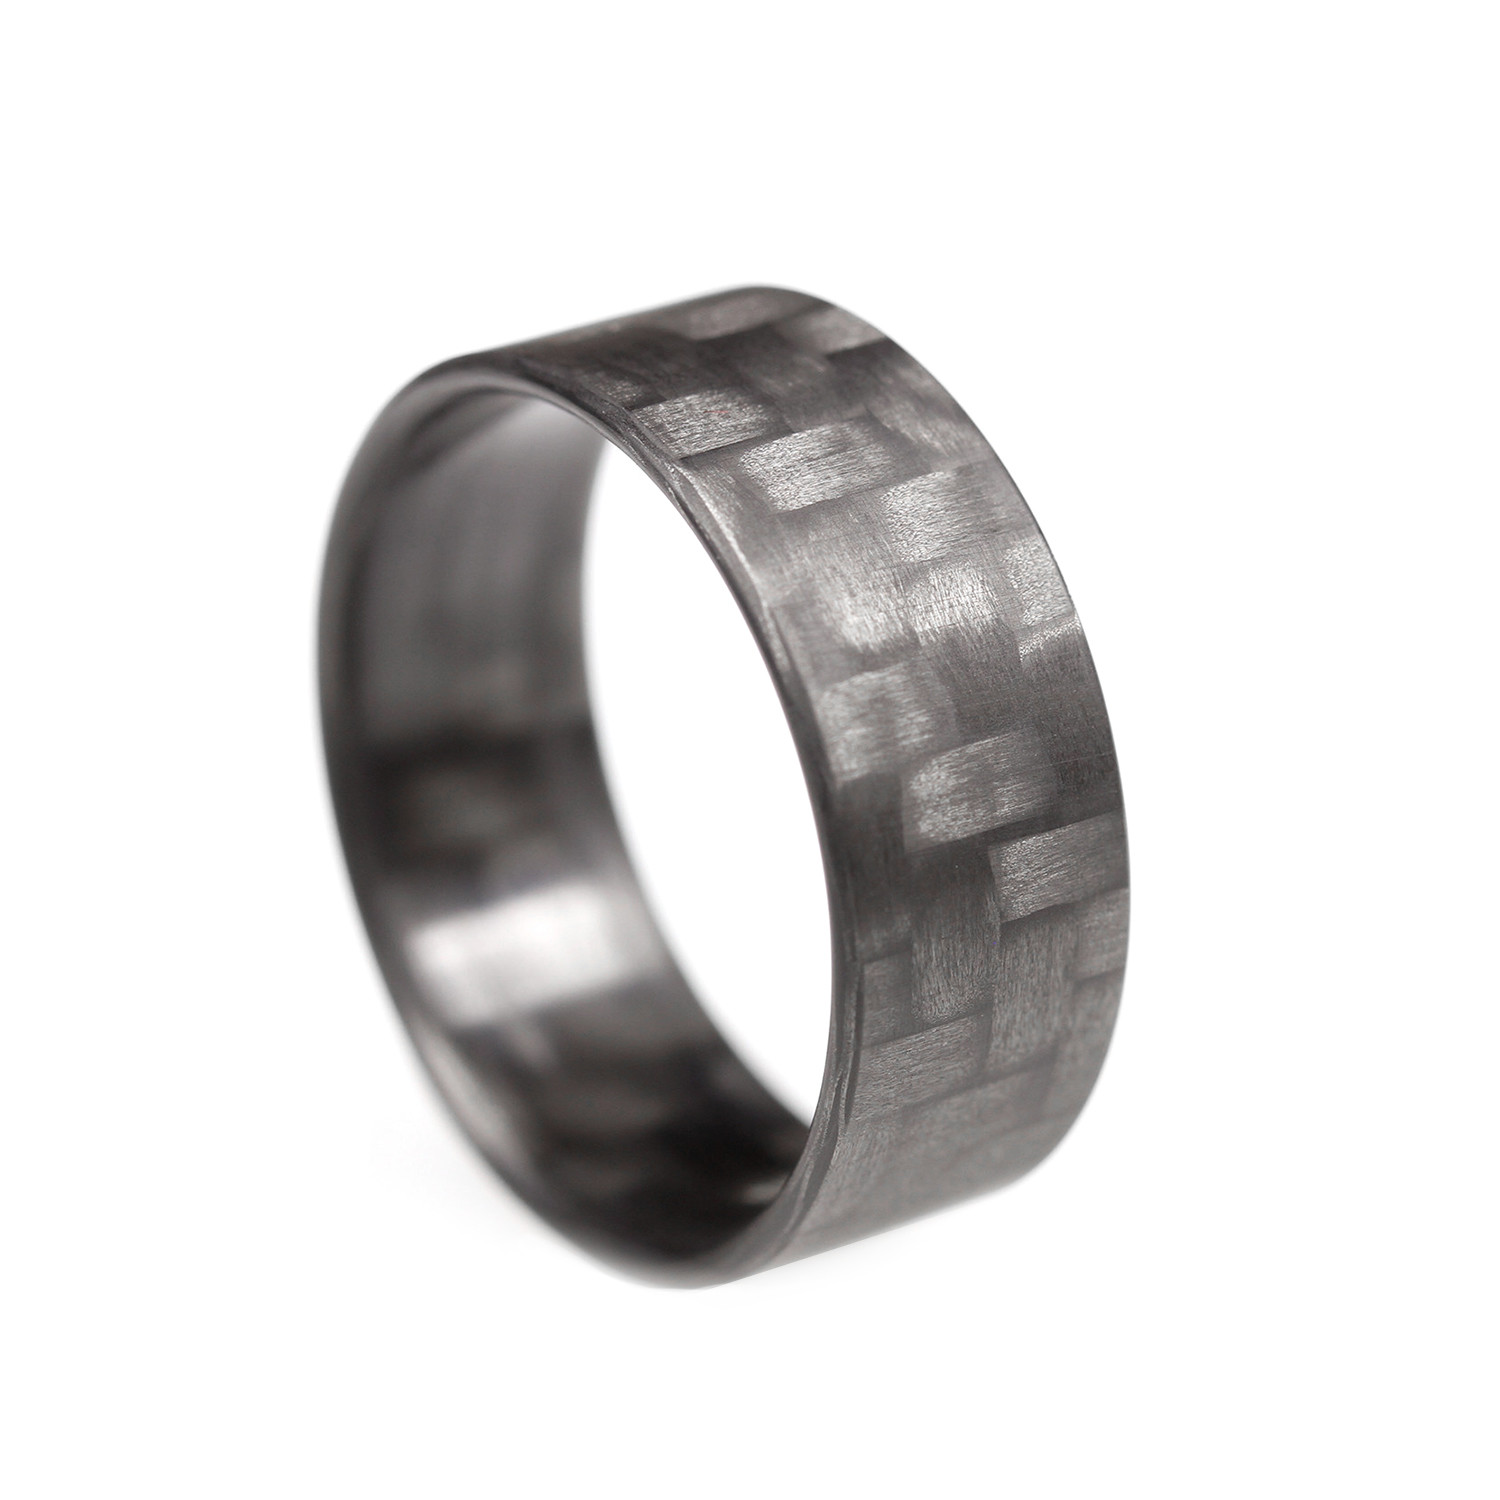 12 000 Enement Ring | Twill Ultralight Carbon Fiber Ring Size 12 Element Rings Touch